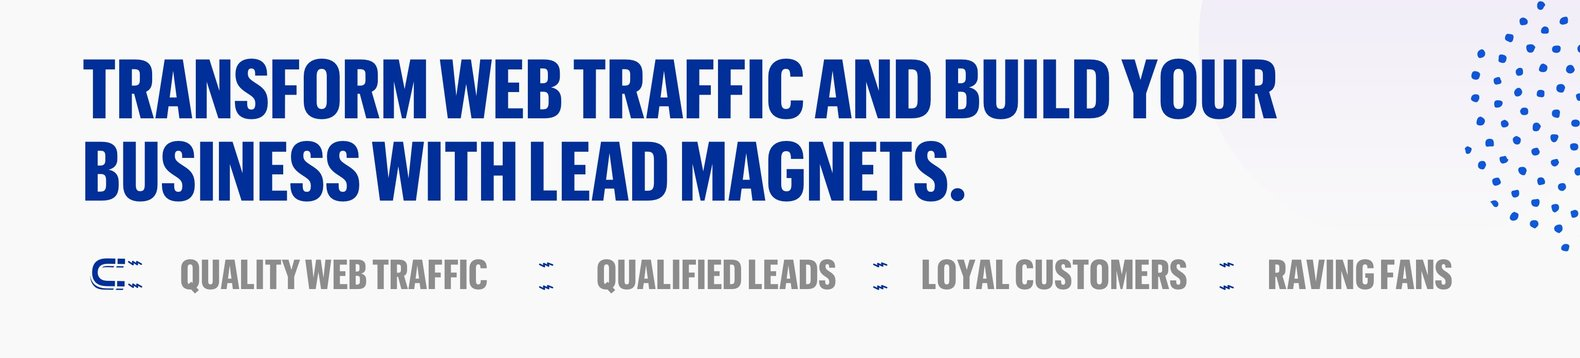 lead magnet lead generation lead pages